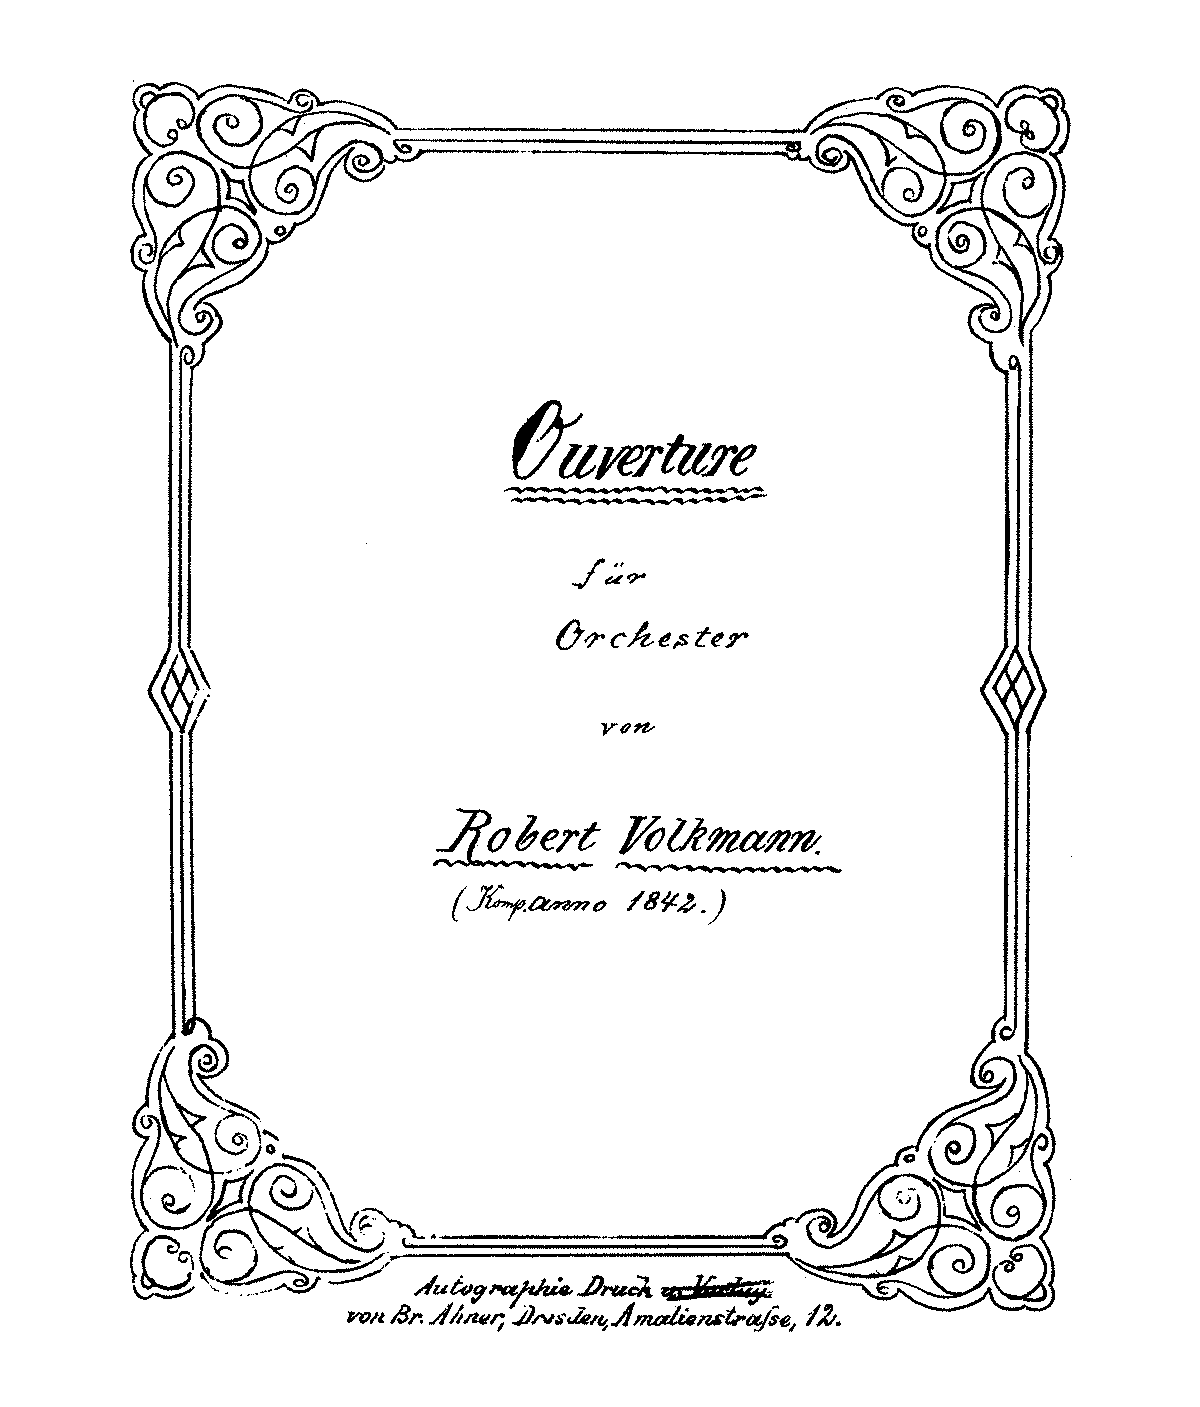 PMLP534994-RVolkmann Overture in C minor ms fs.pdf